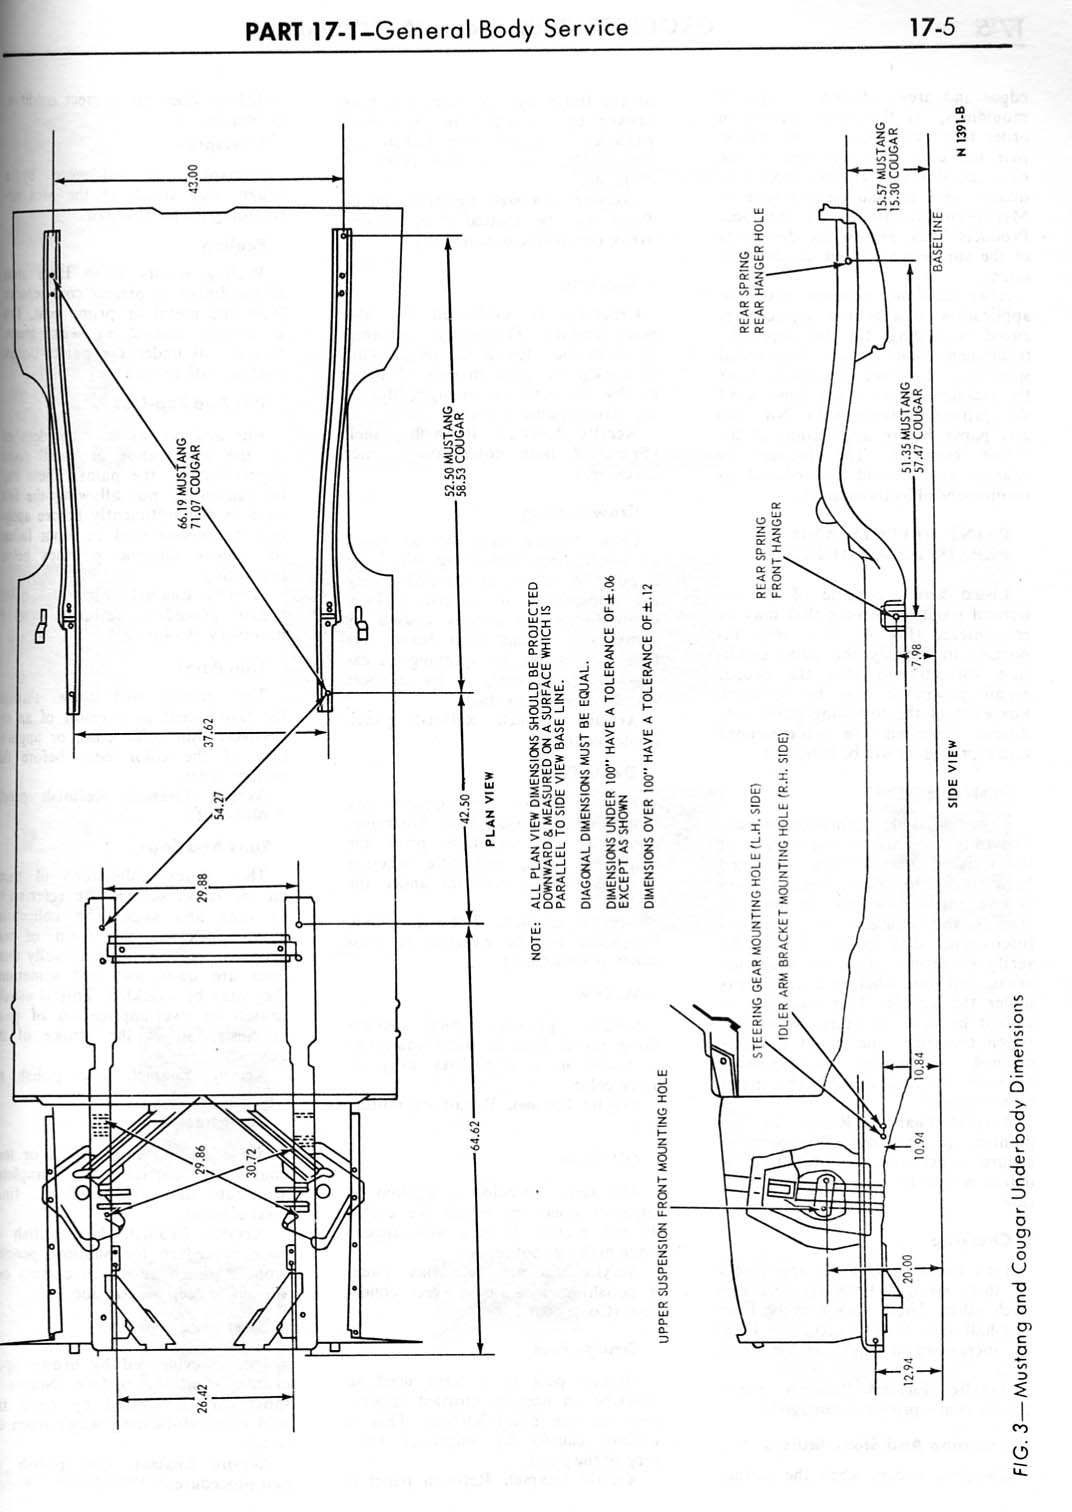 will this help - Mustang Frame